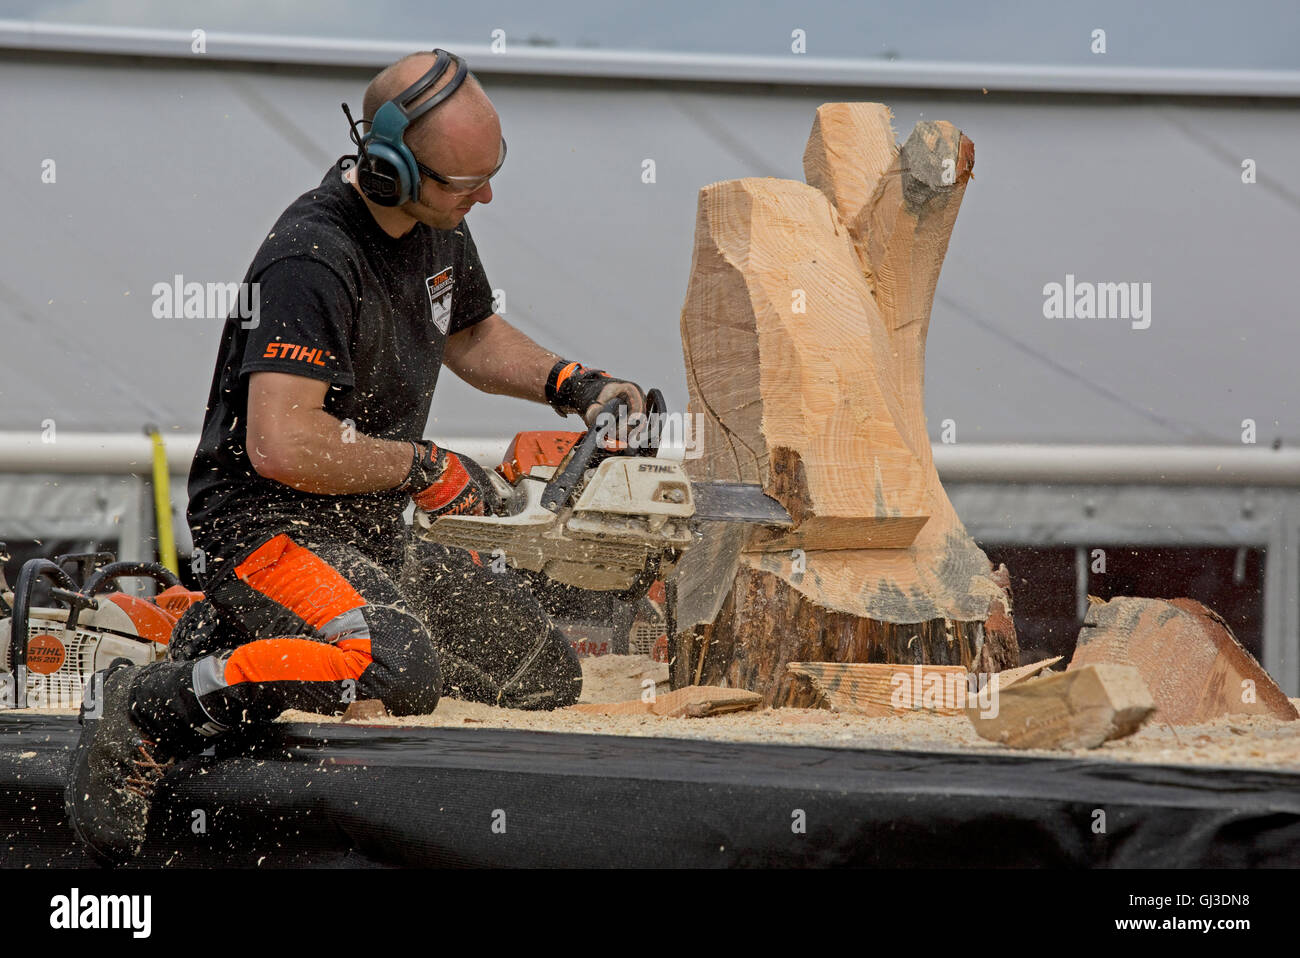 Man chainsaw carving owl from raw log at Countryfile Live 2016 Blenheim UK - Stock Image